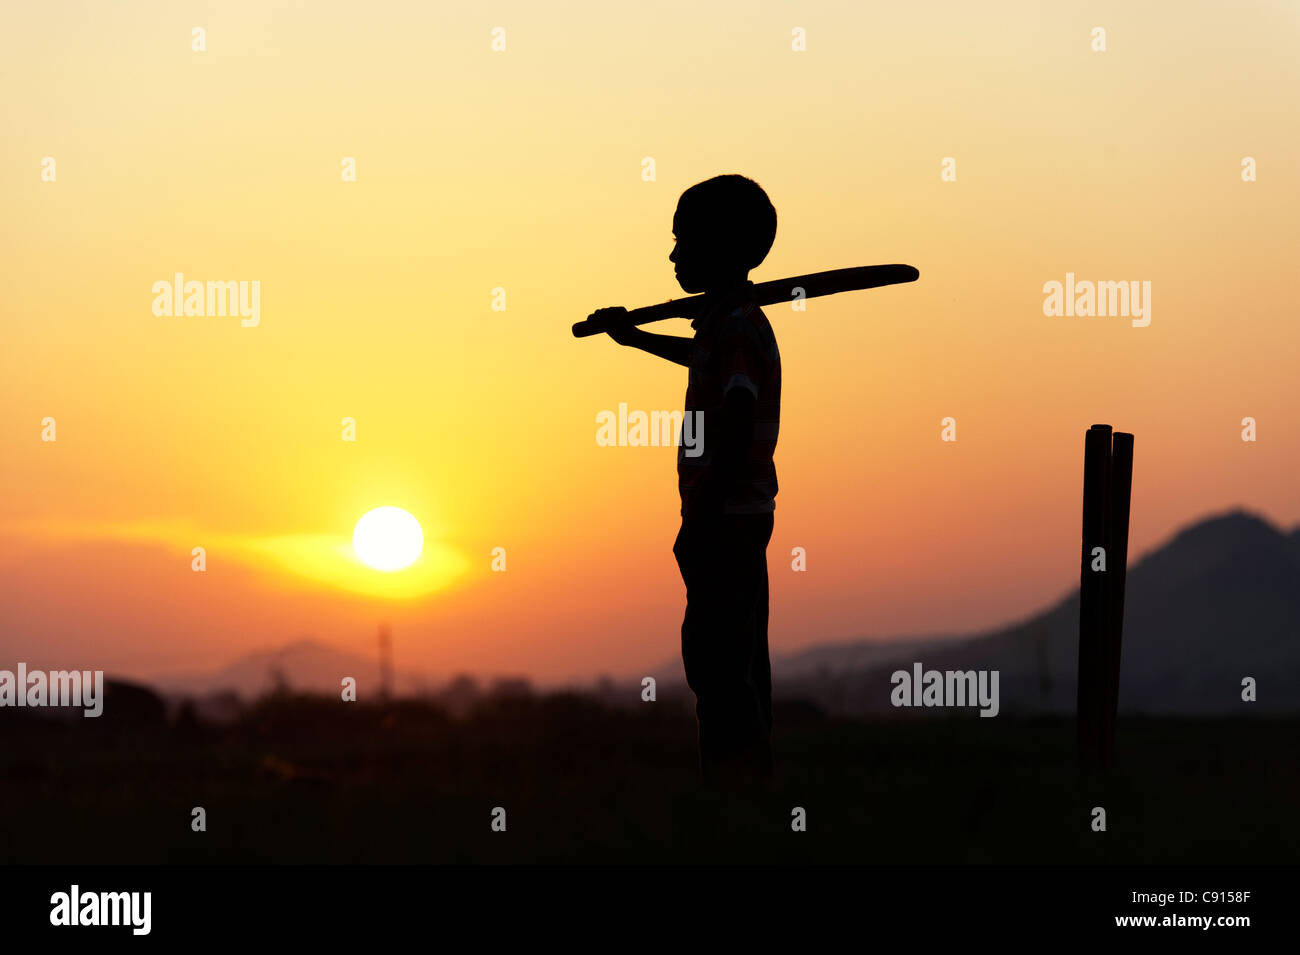 Silhouette of young Indian boy playing cricket against a sunset background - Stock Image